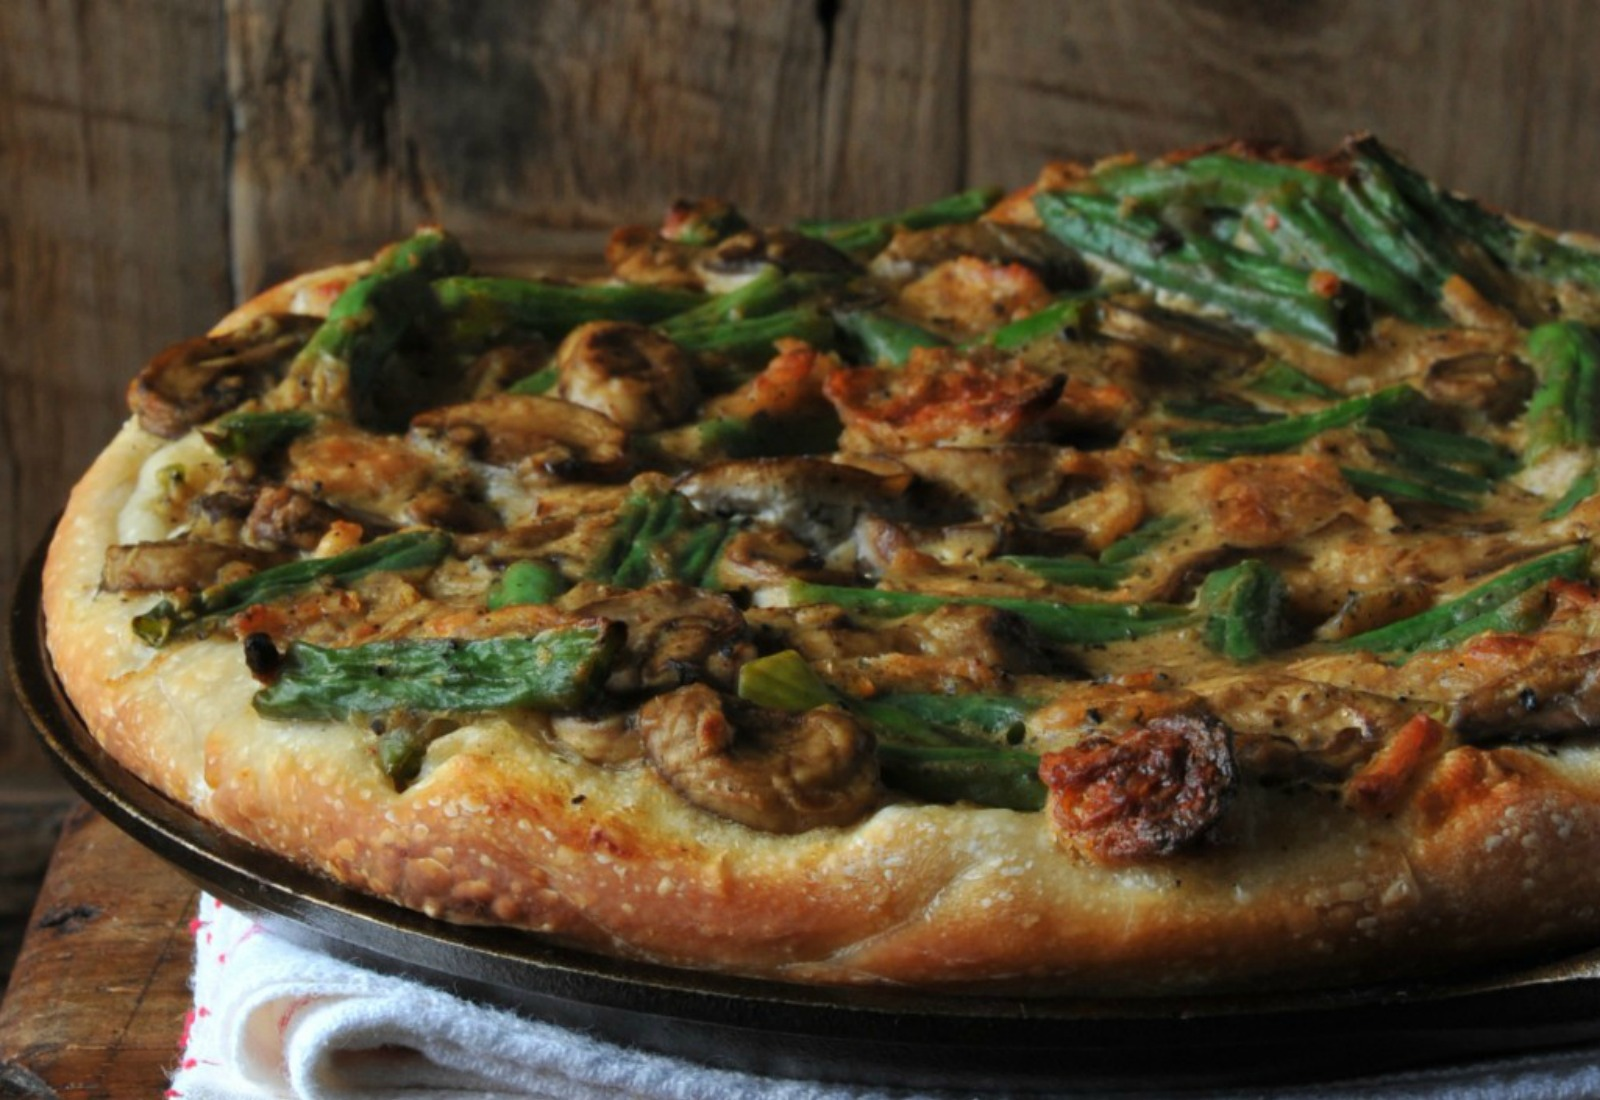 In Honor of National Pizza Week, Here Are 15 Vegan Pizzas For The Ultimate Pizza Party!